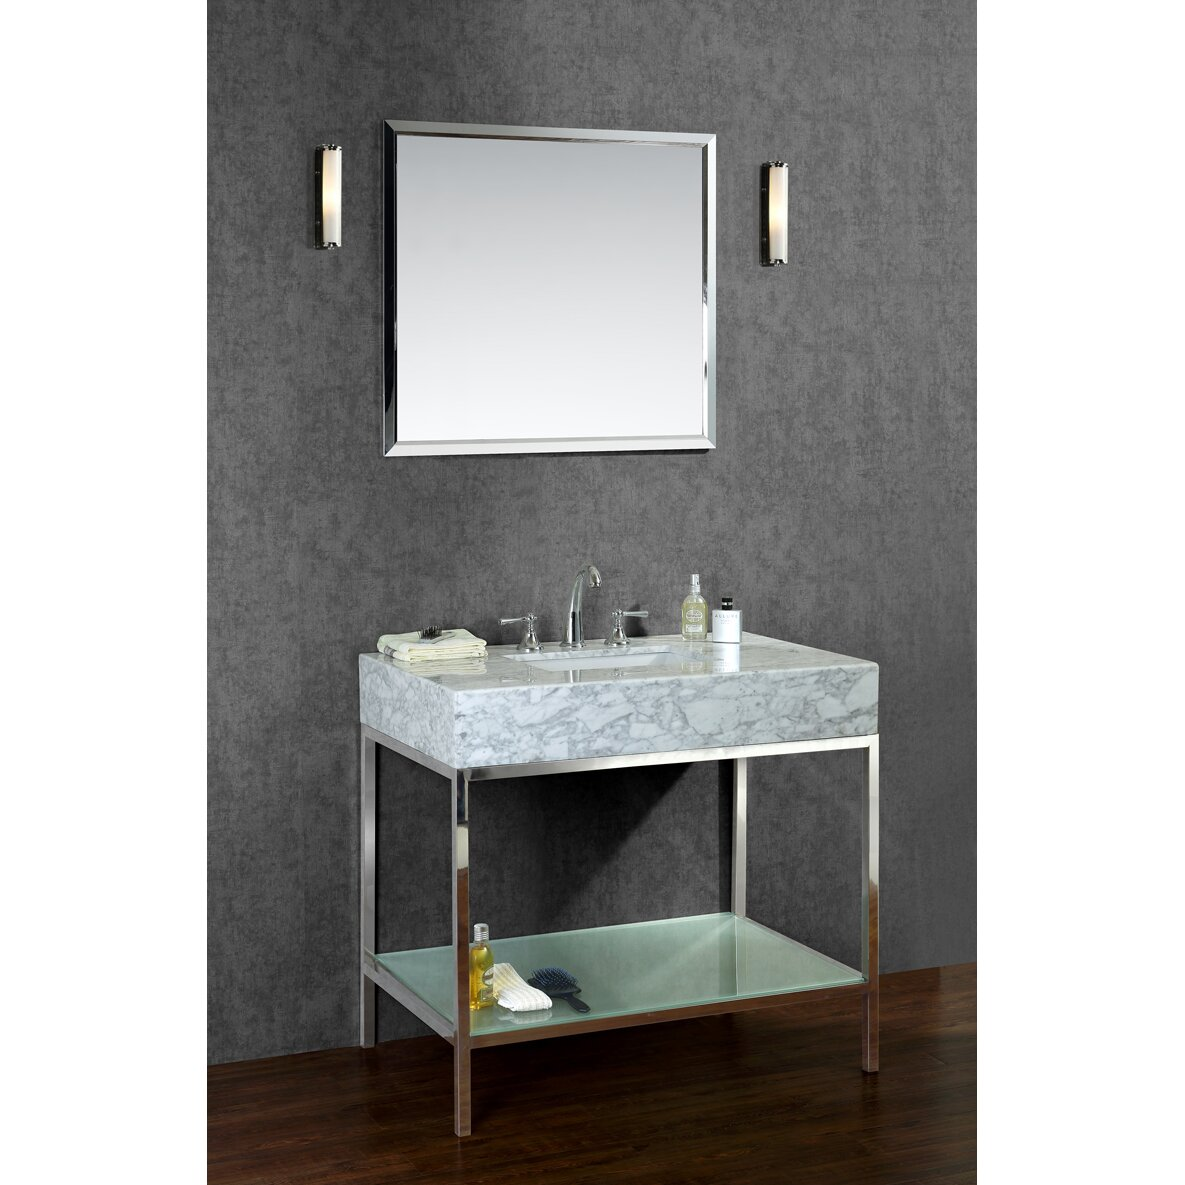 Lovely secure img wfrcdn lf maxsquare hash Ariel Bath Brightwater Single Sink Bathroom Vanity Set SCBRIPSS